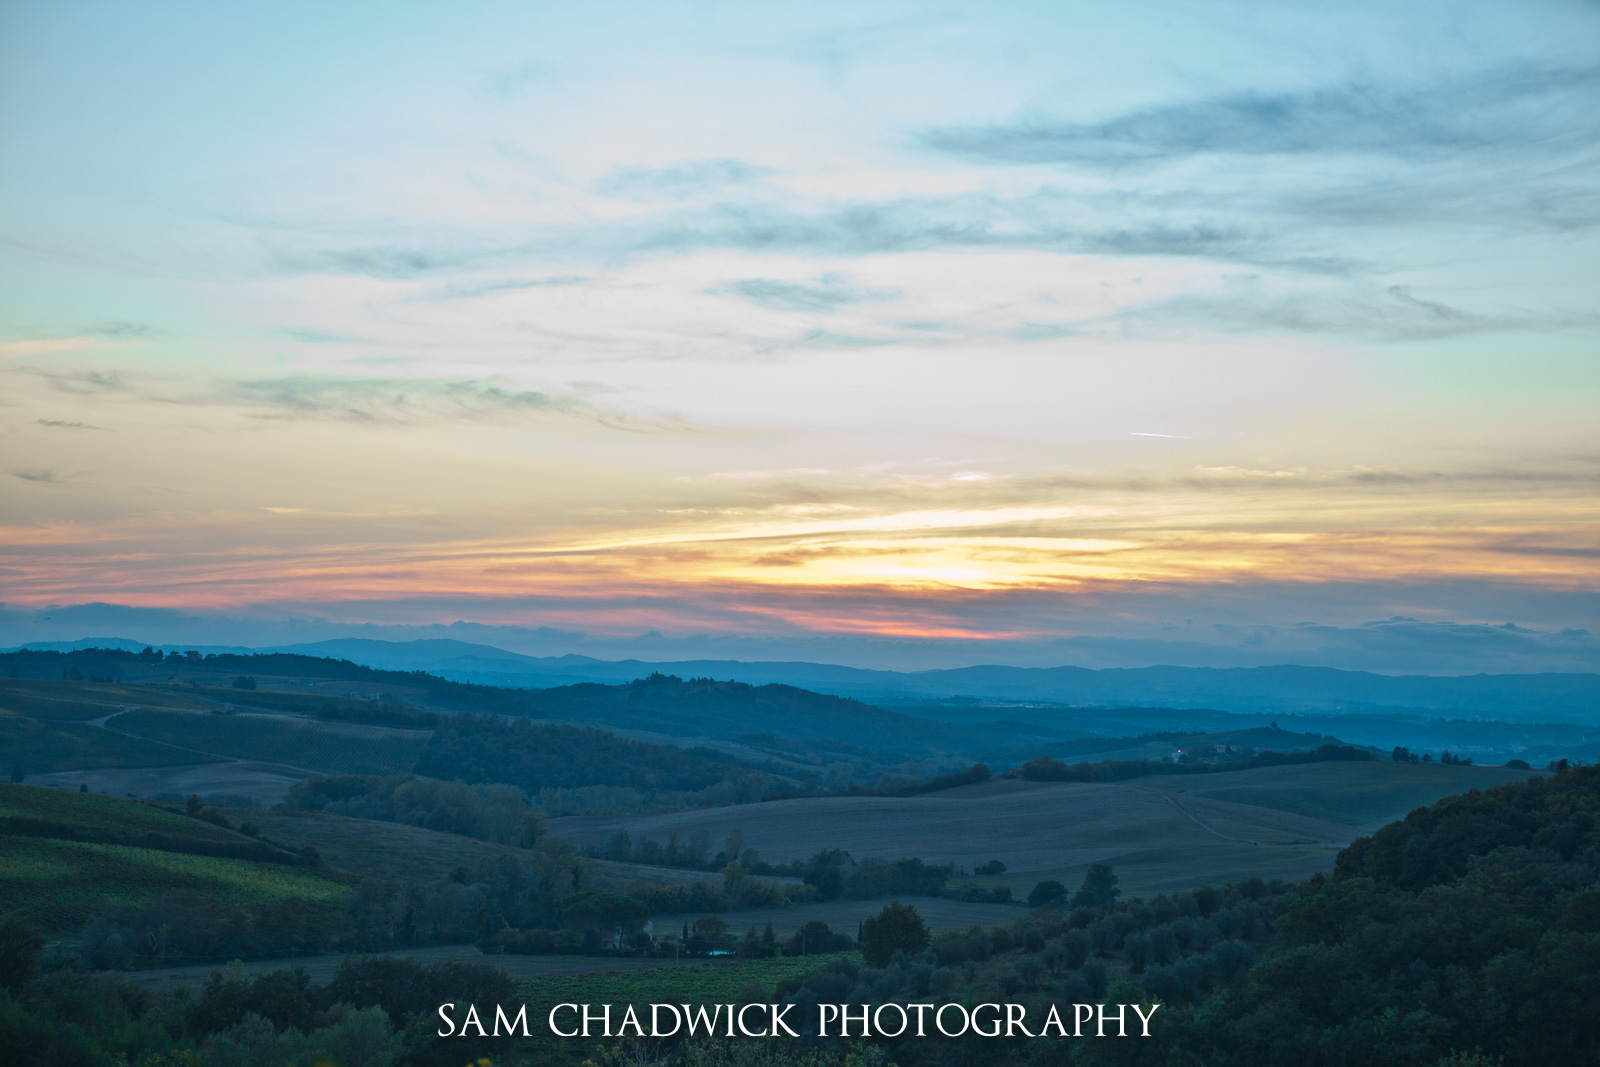 View from Castellina in Chianti